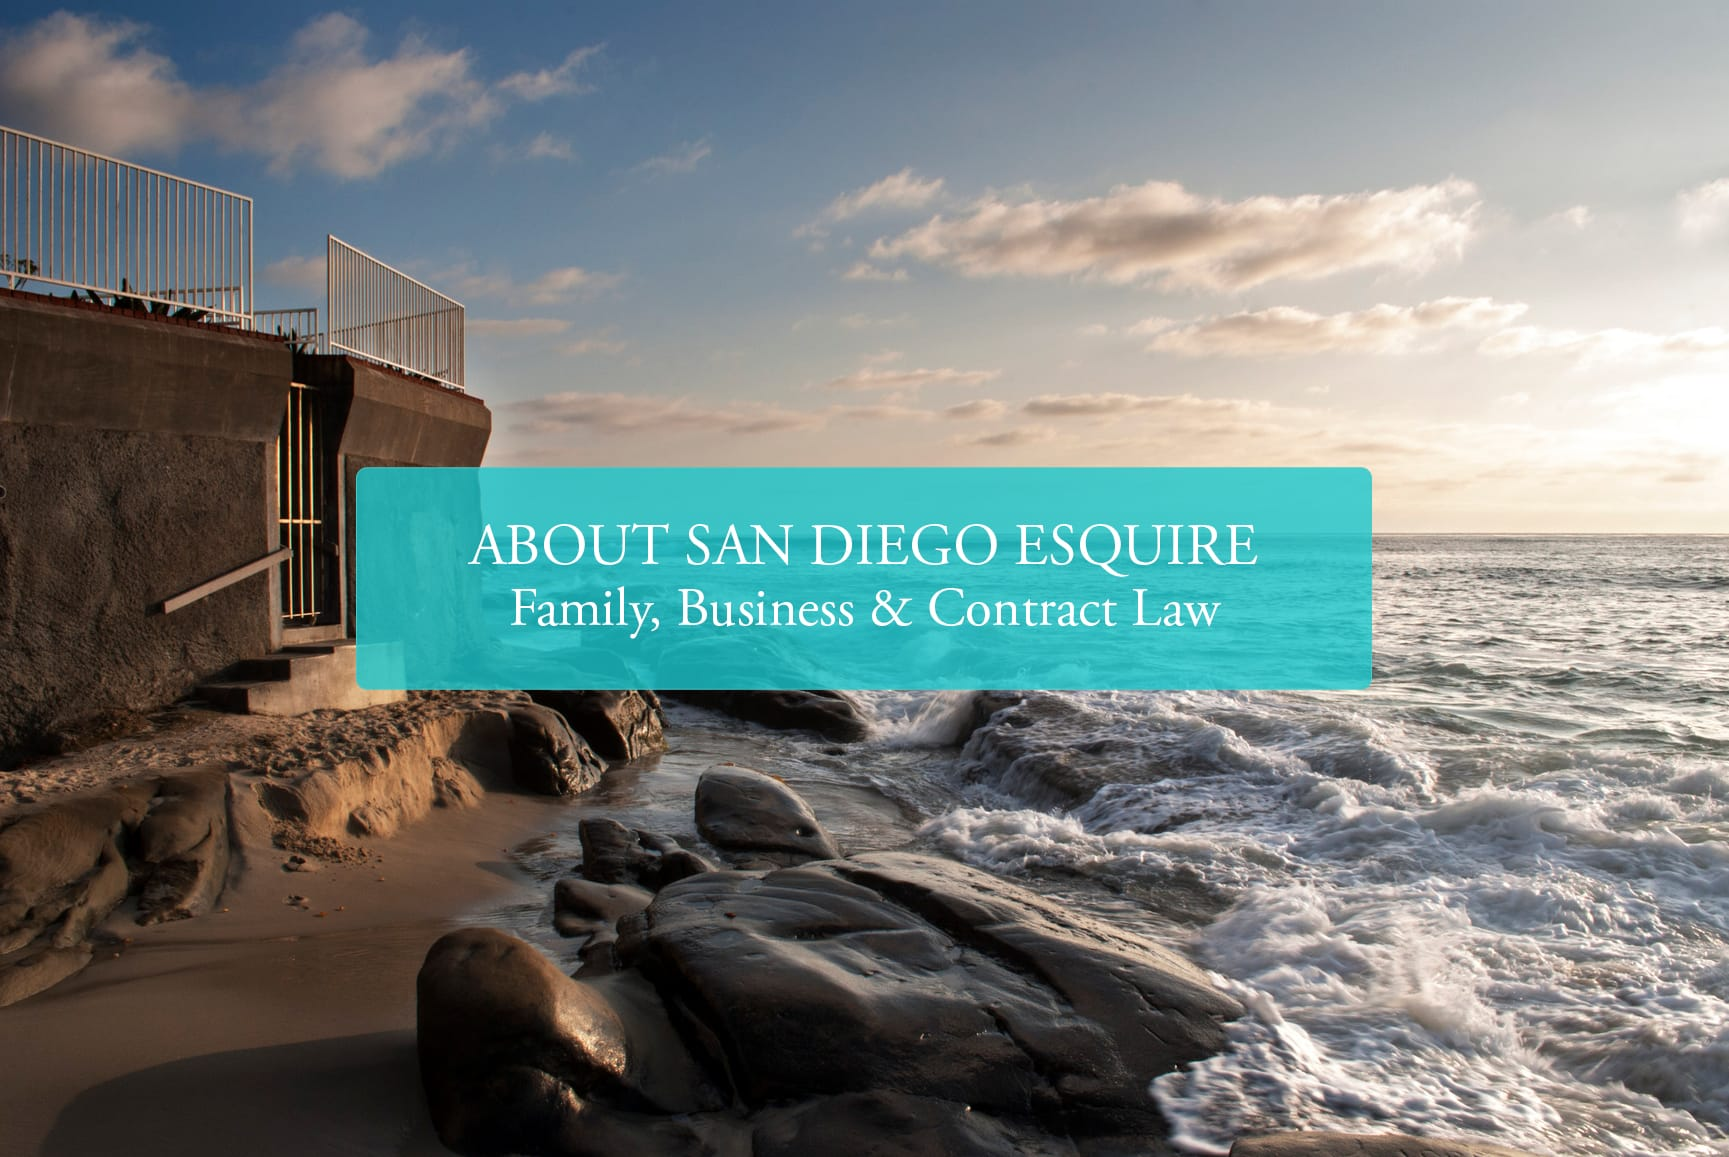 About San Diego Esquire